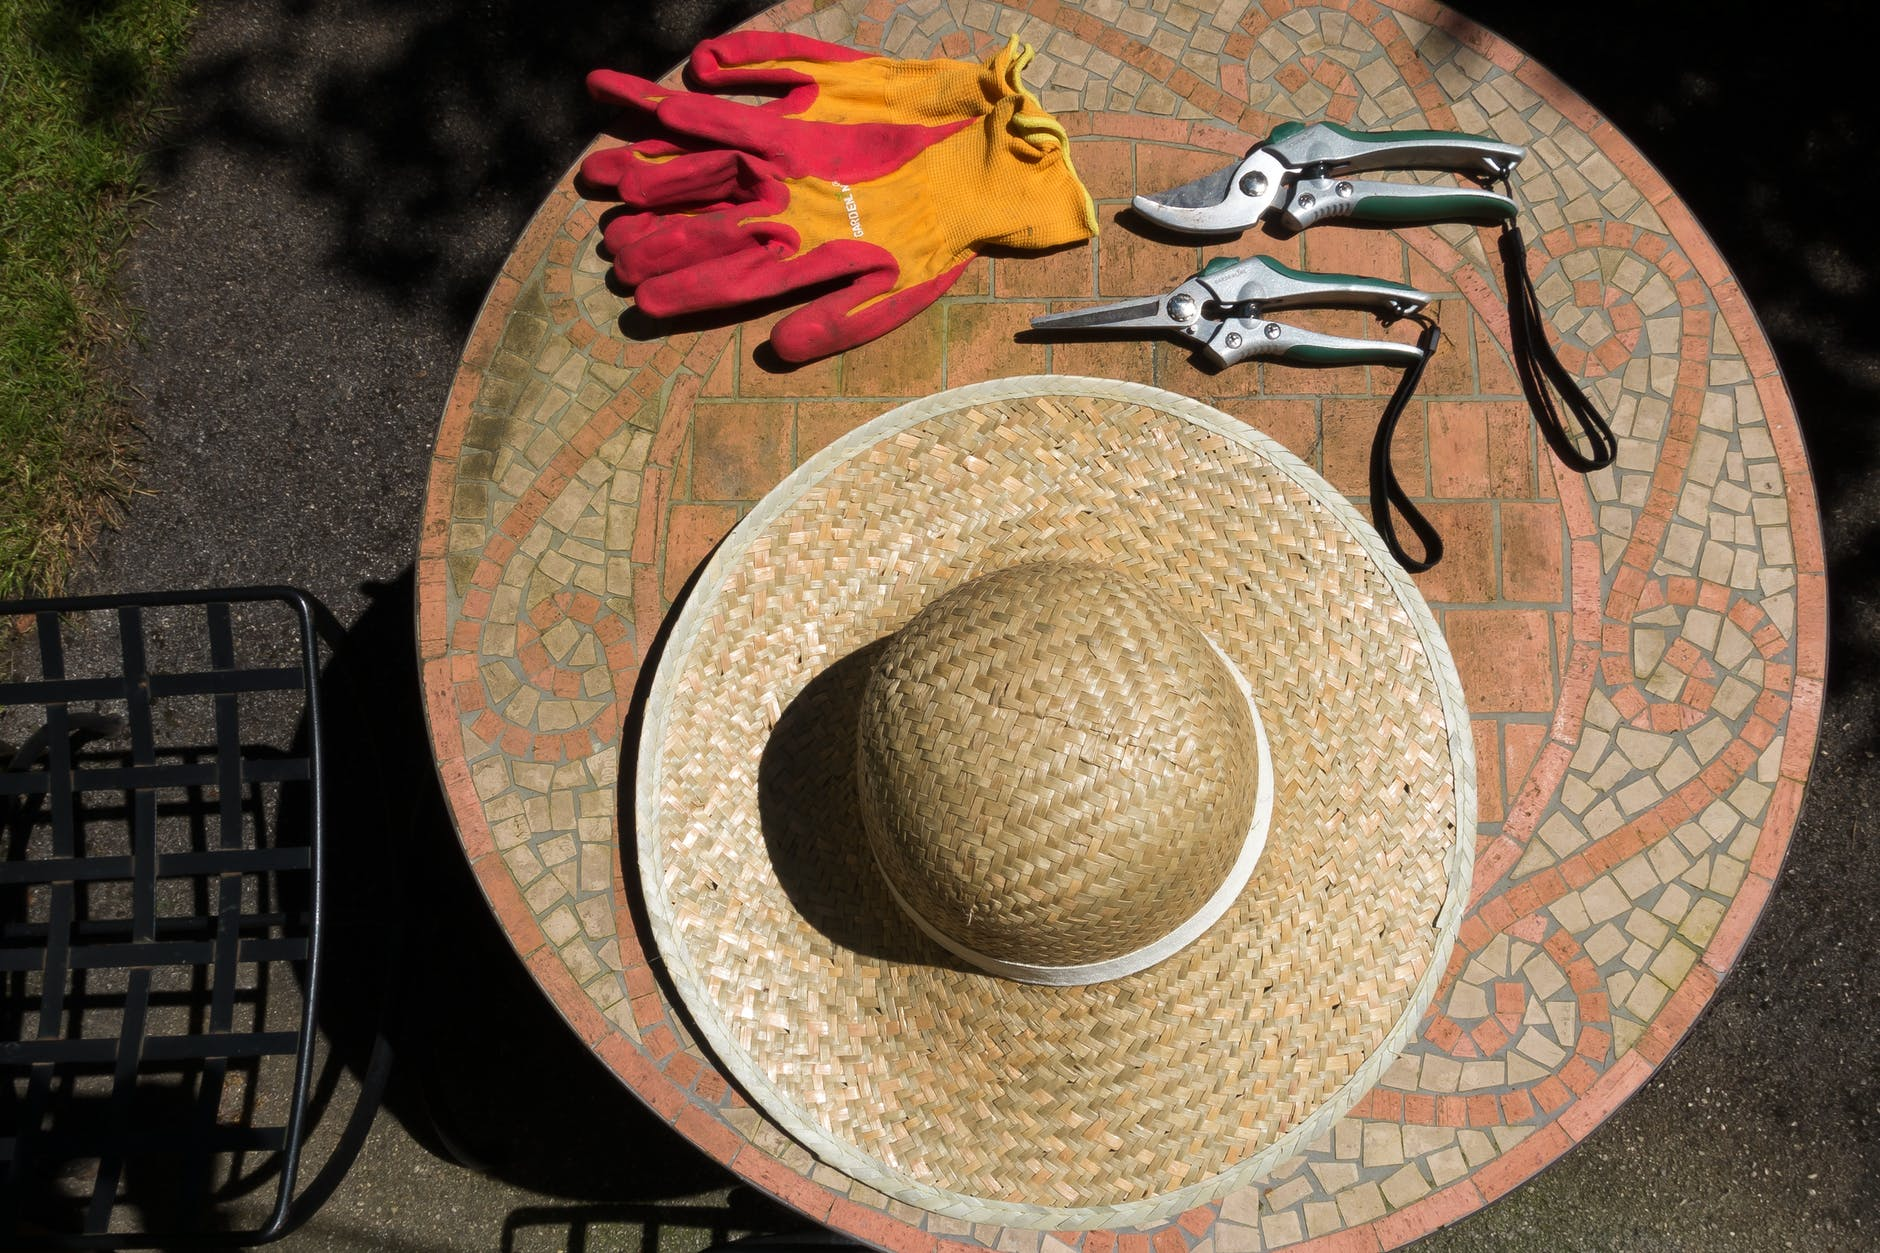 Outdoor table with wide brimmed hat, garden gloves and hand held pruners